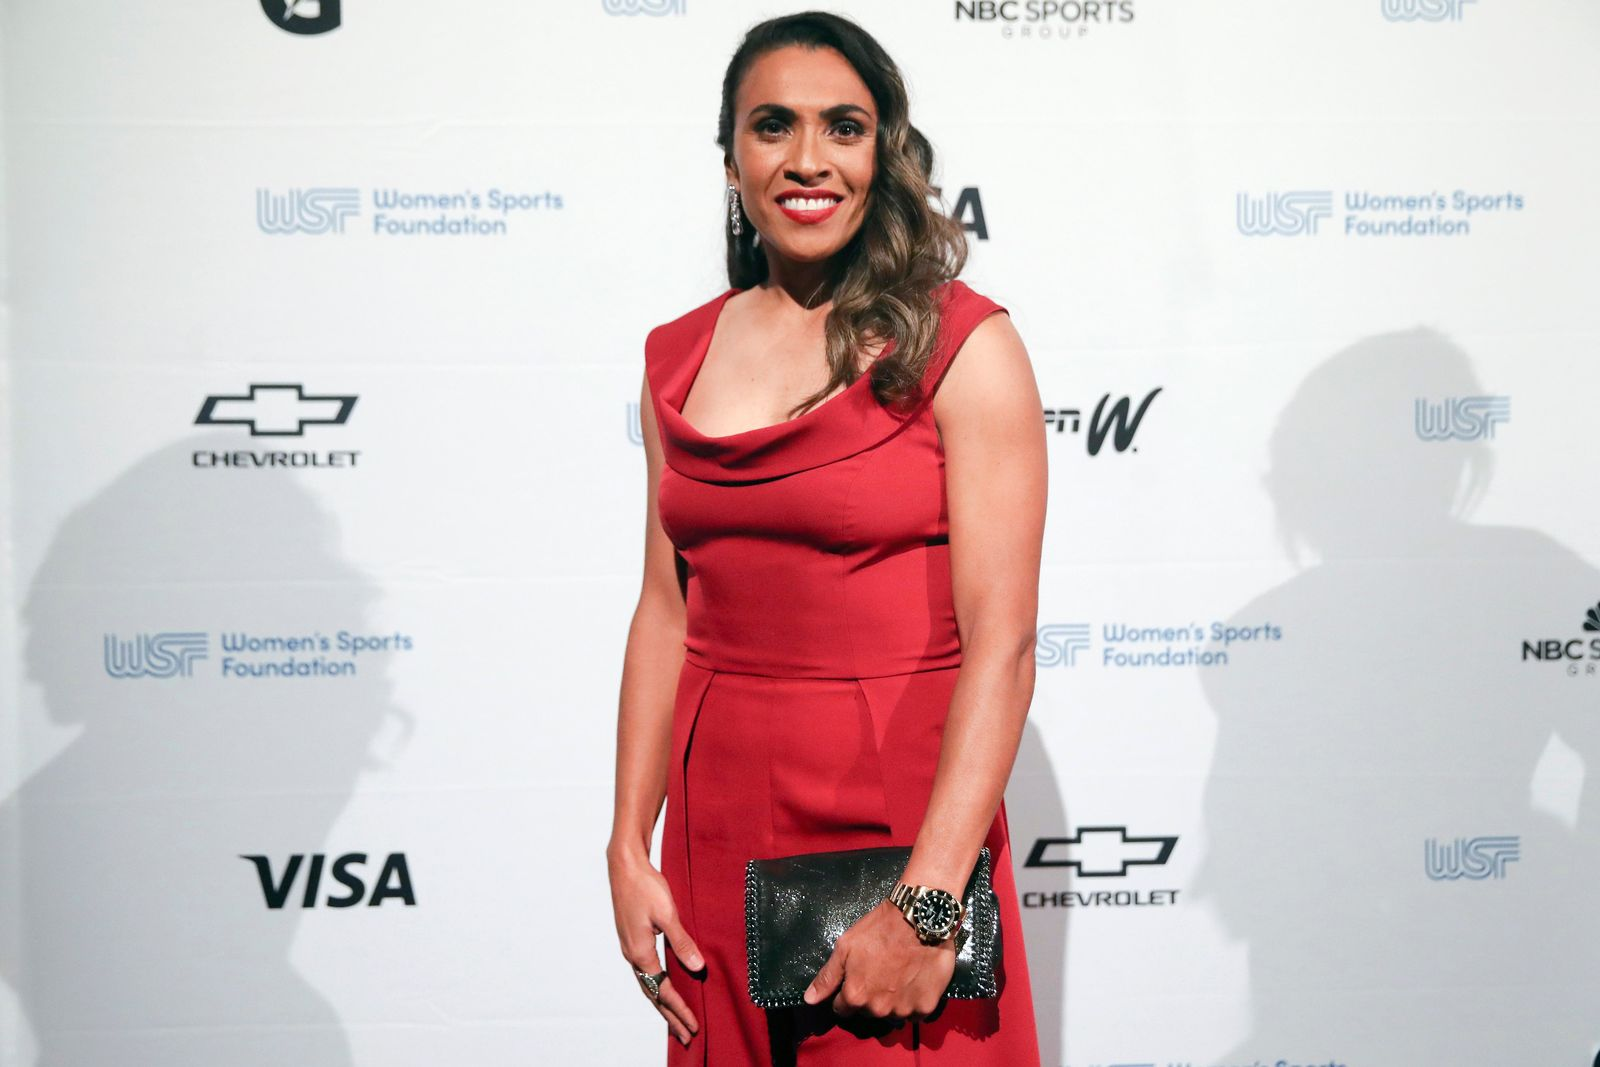 In this Wednesday, Oct. 16, 2019, photo Brazilian soccer star Marta Vieira da Silva poses for photos on the red carpet of the Women's Sports Foundation's 40th annual Salute to Women in Sports in New York. Marta, who was honored with the Wilma Rudolph Courage Award, is a six-time FIFA Player of the Year.  (AP Photo/Mary Altaffer)